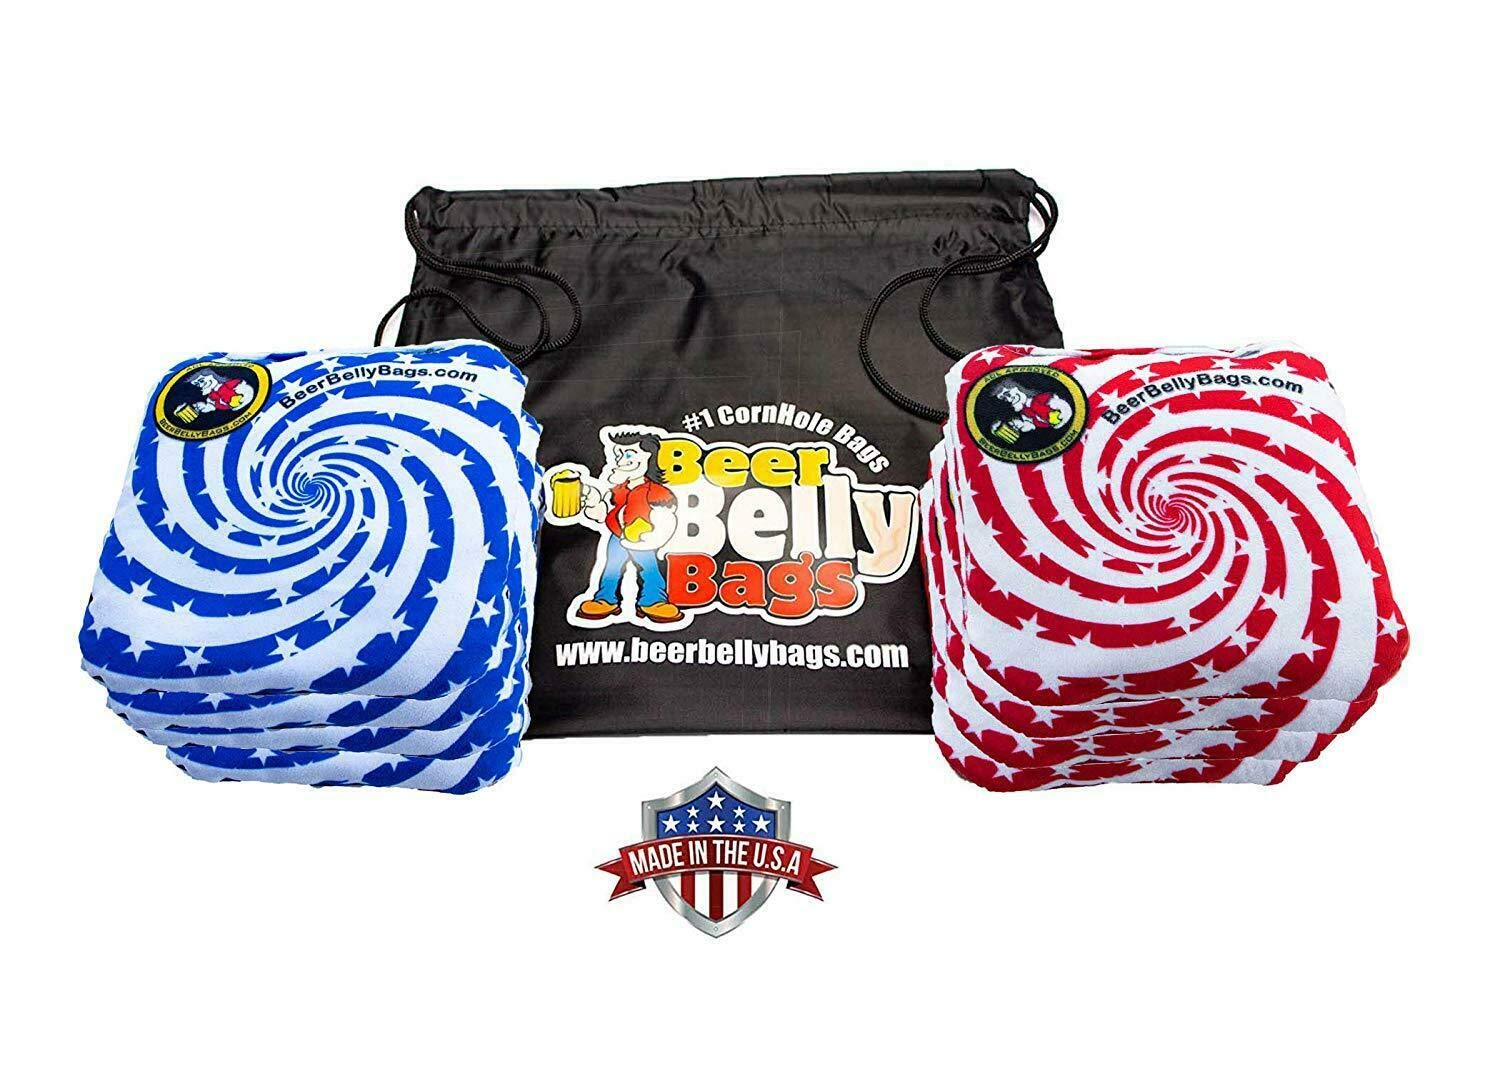 Beer Belly Bags Cornhole - Performance Series 8 Bags ACL Approved Resin Filled - Double Sided - Sticky Side | Slick Side(Stars & Stripes) by Beer Belly Bags